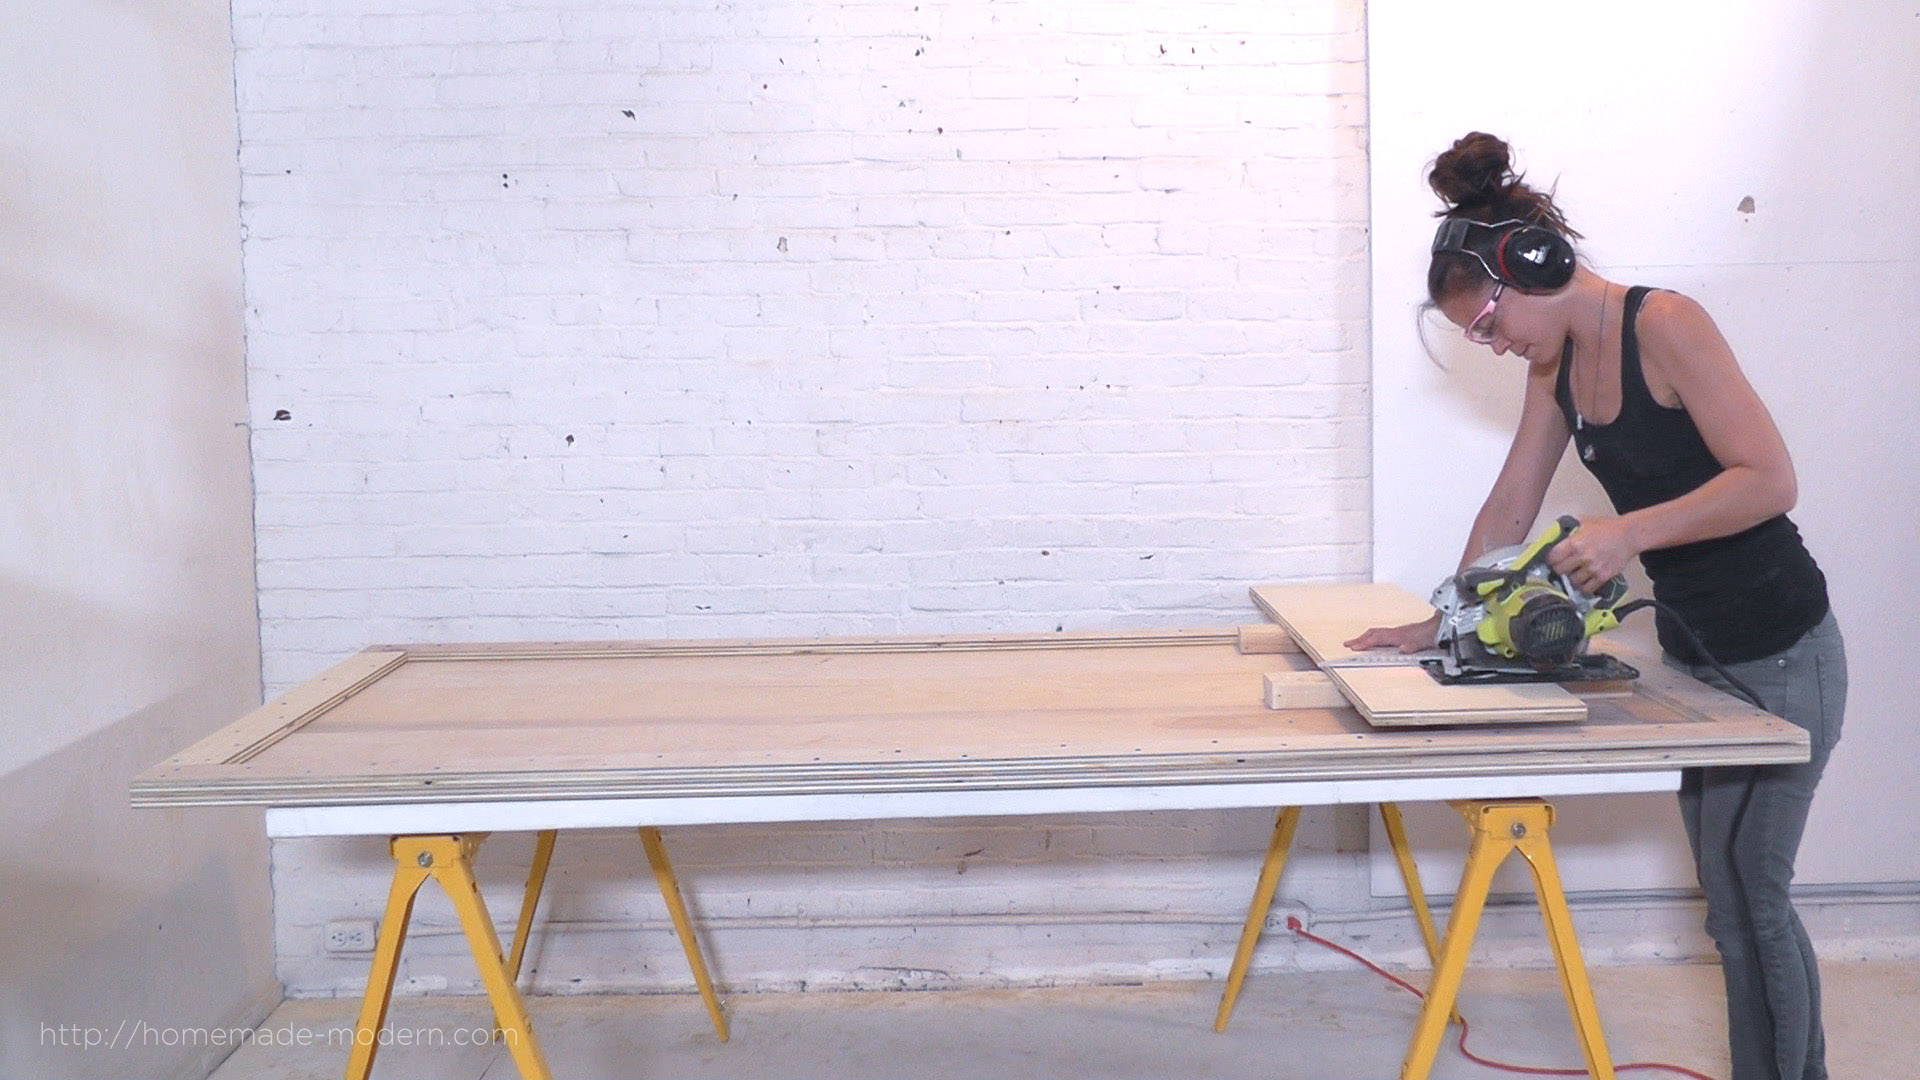 "This DIY Modern Bed is made from a sheet of ¾"" plywood, and 10 ikea shelf brackets. The materials cost  less than $100 and only 3 power tools are needed to build it. Full instructions can be found at HomeMade-Modern.com."